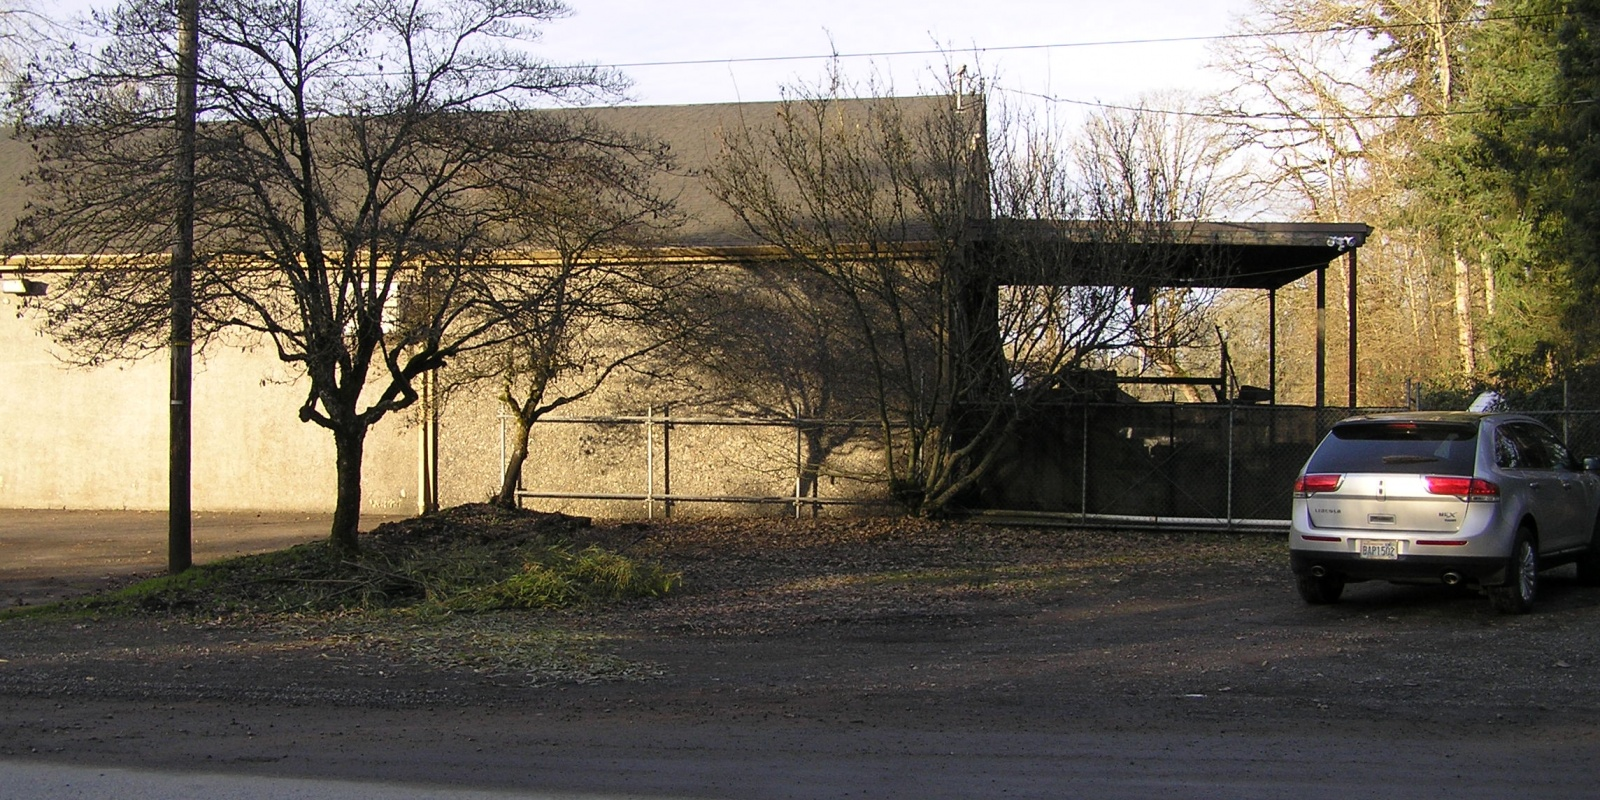 7318 NE 110th Street, Vancouver, WA, ,Industrial,Sold/Leased,7318 NE 110th Street, Vancouver, WA,1176